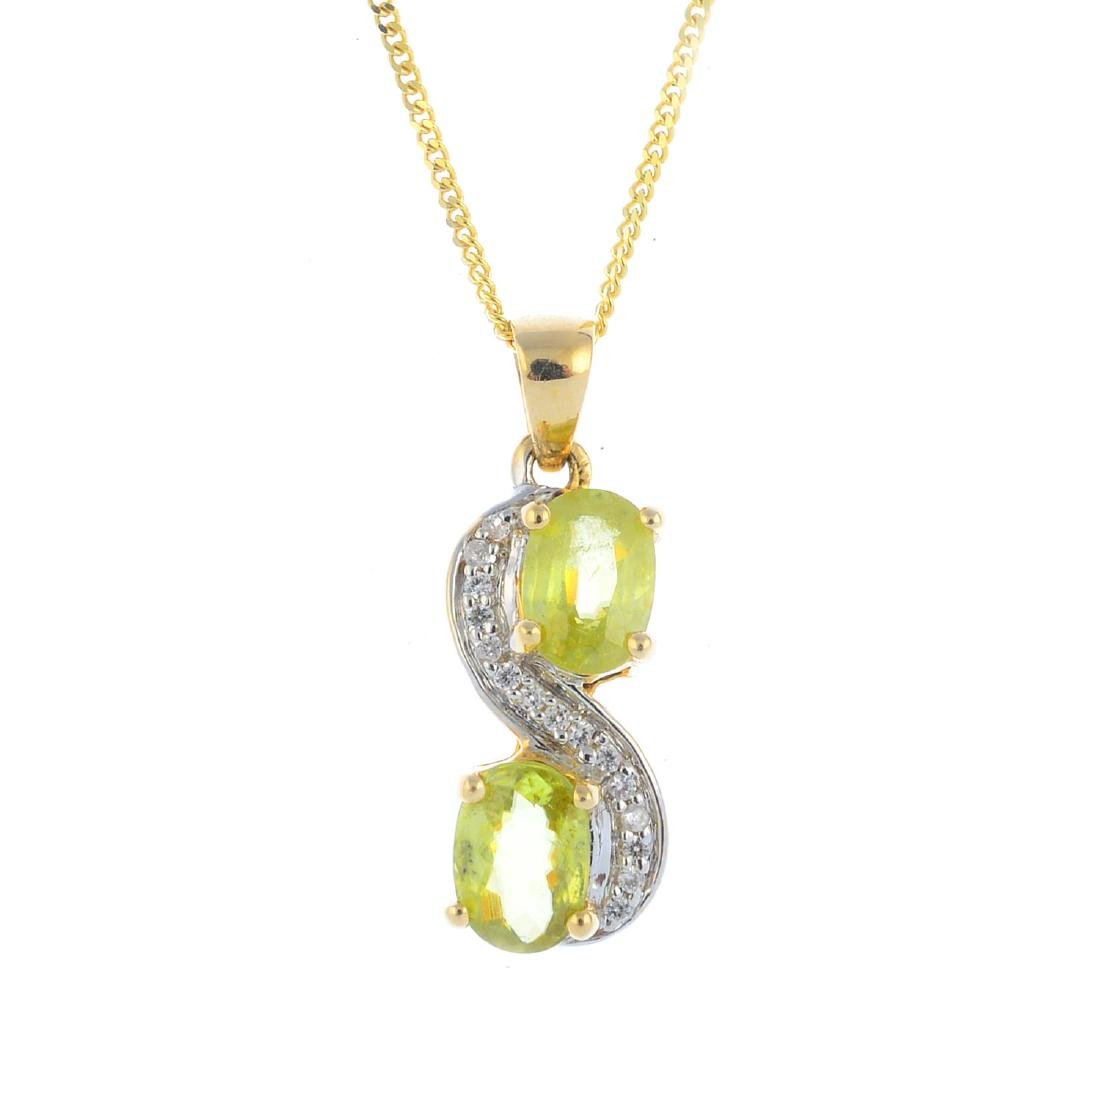 A 9ct gold sphene and cubic zirconia pendant. Designed